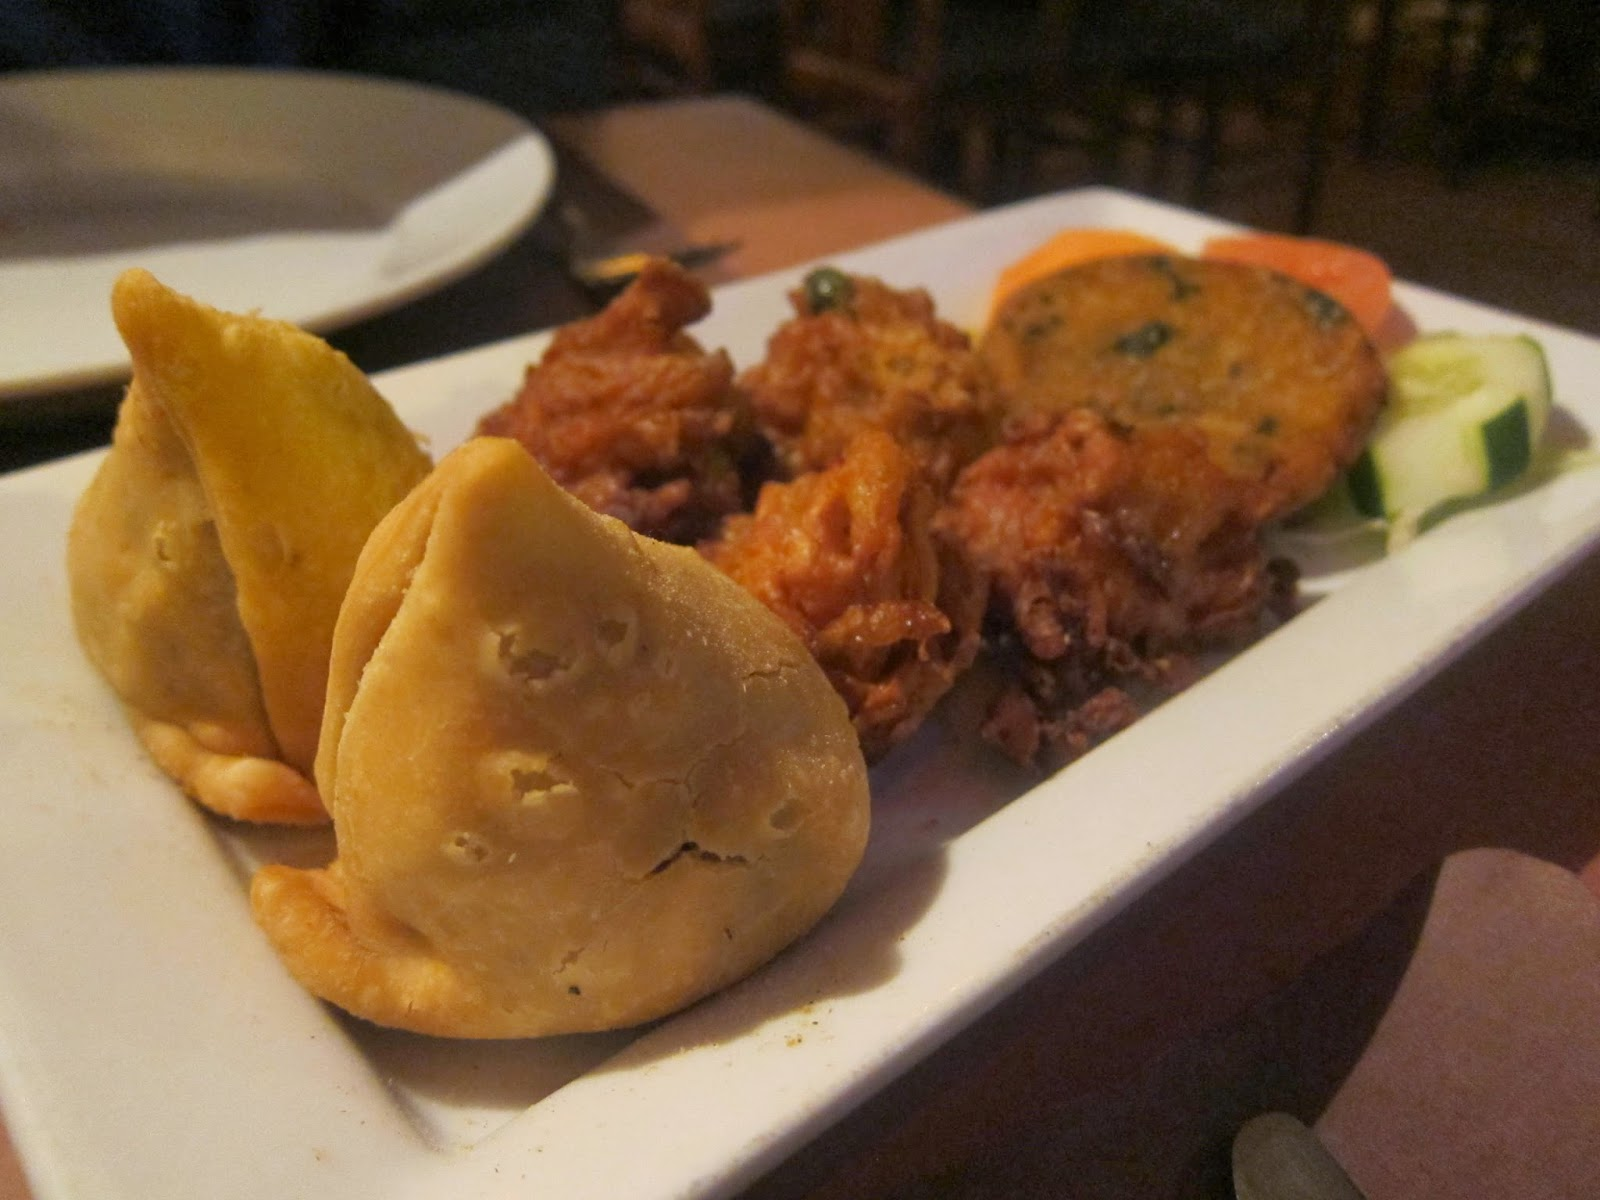 #Vegetarian Platter from India Palace in Somerville | The Economical Eater